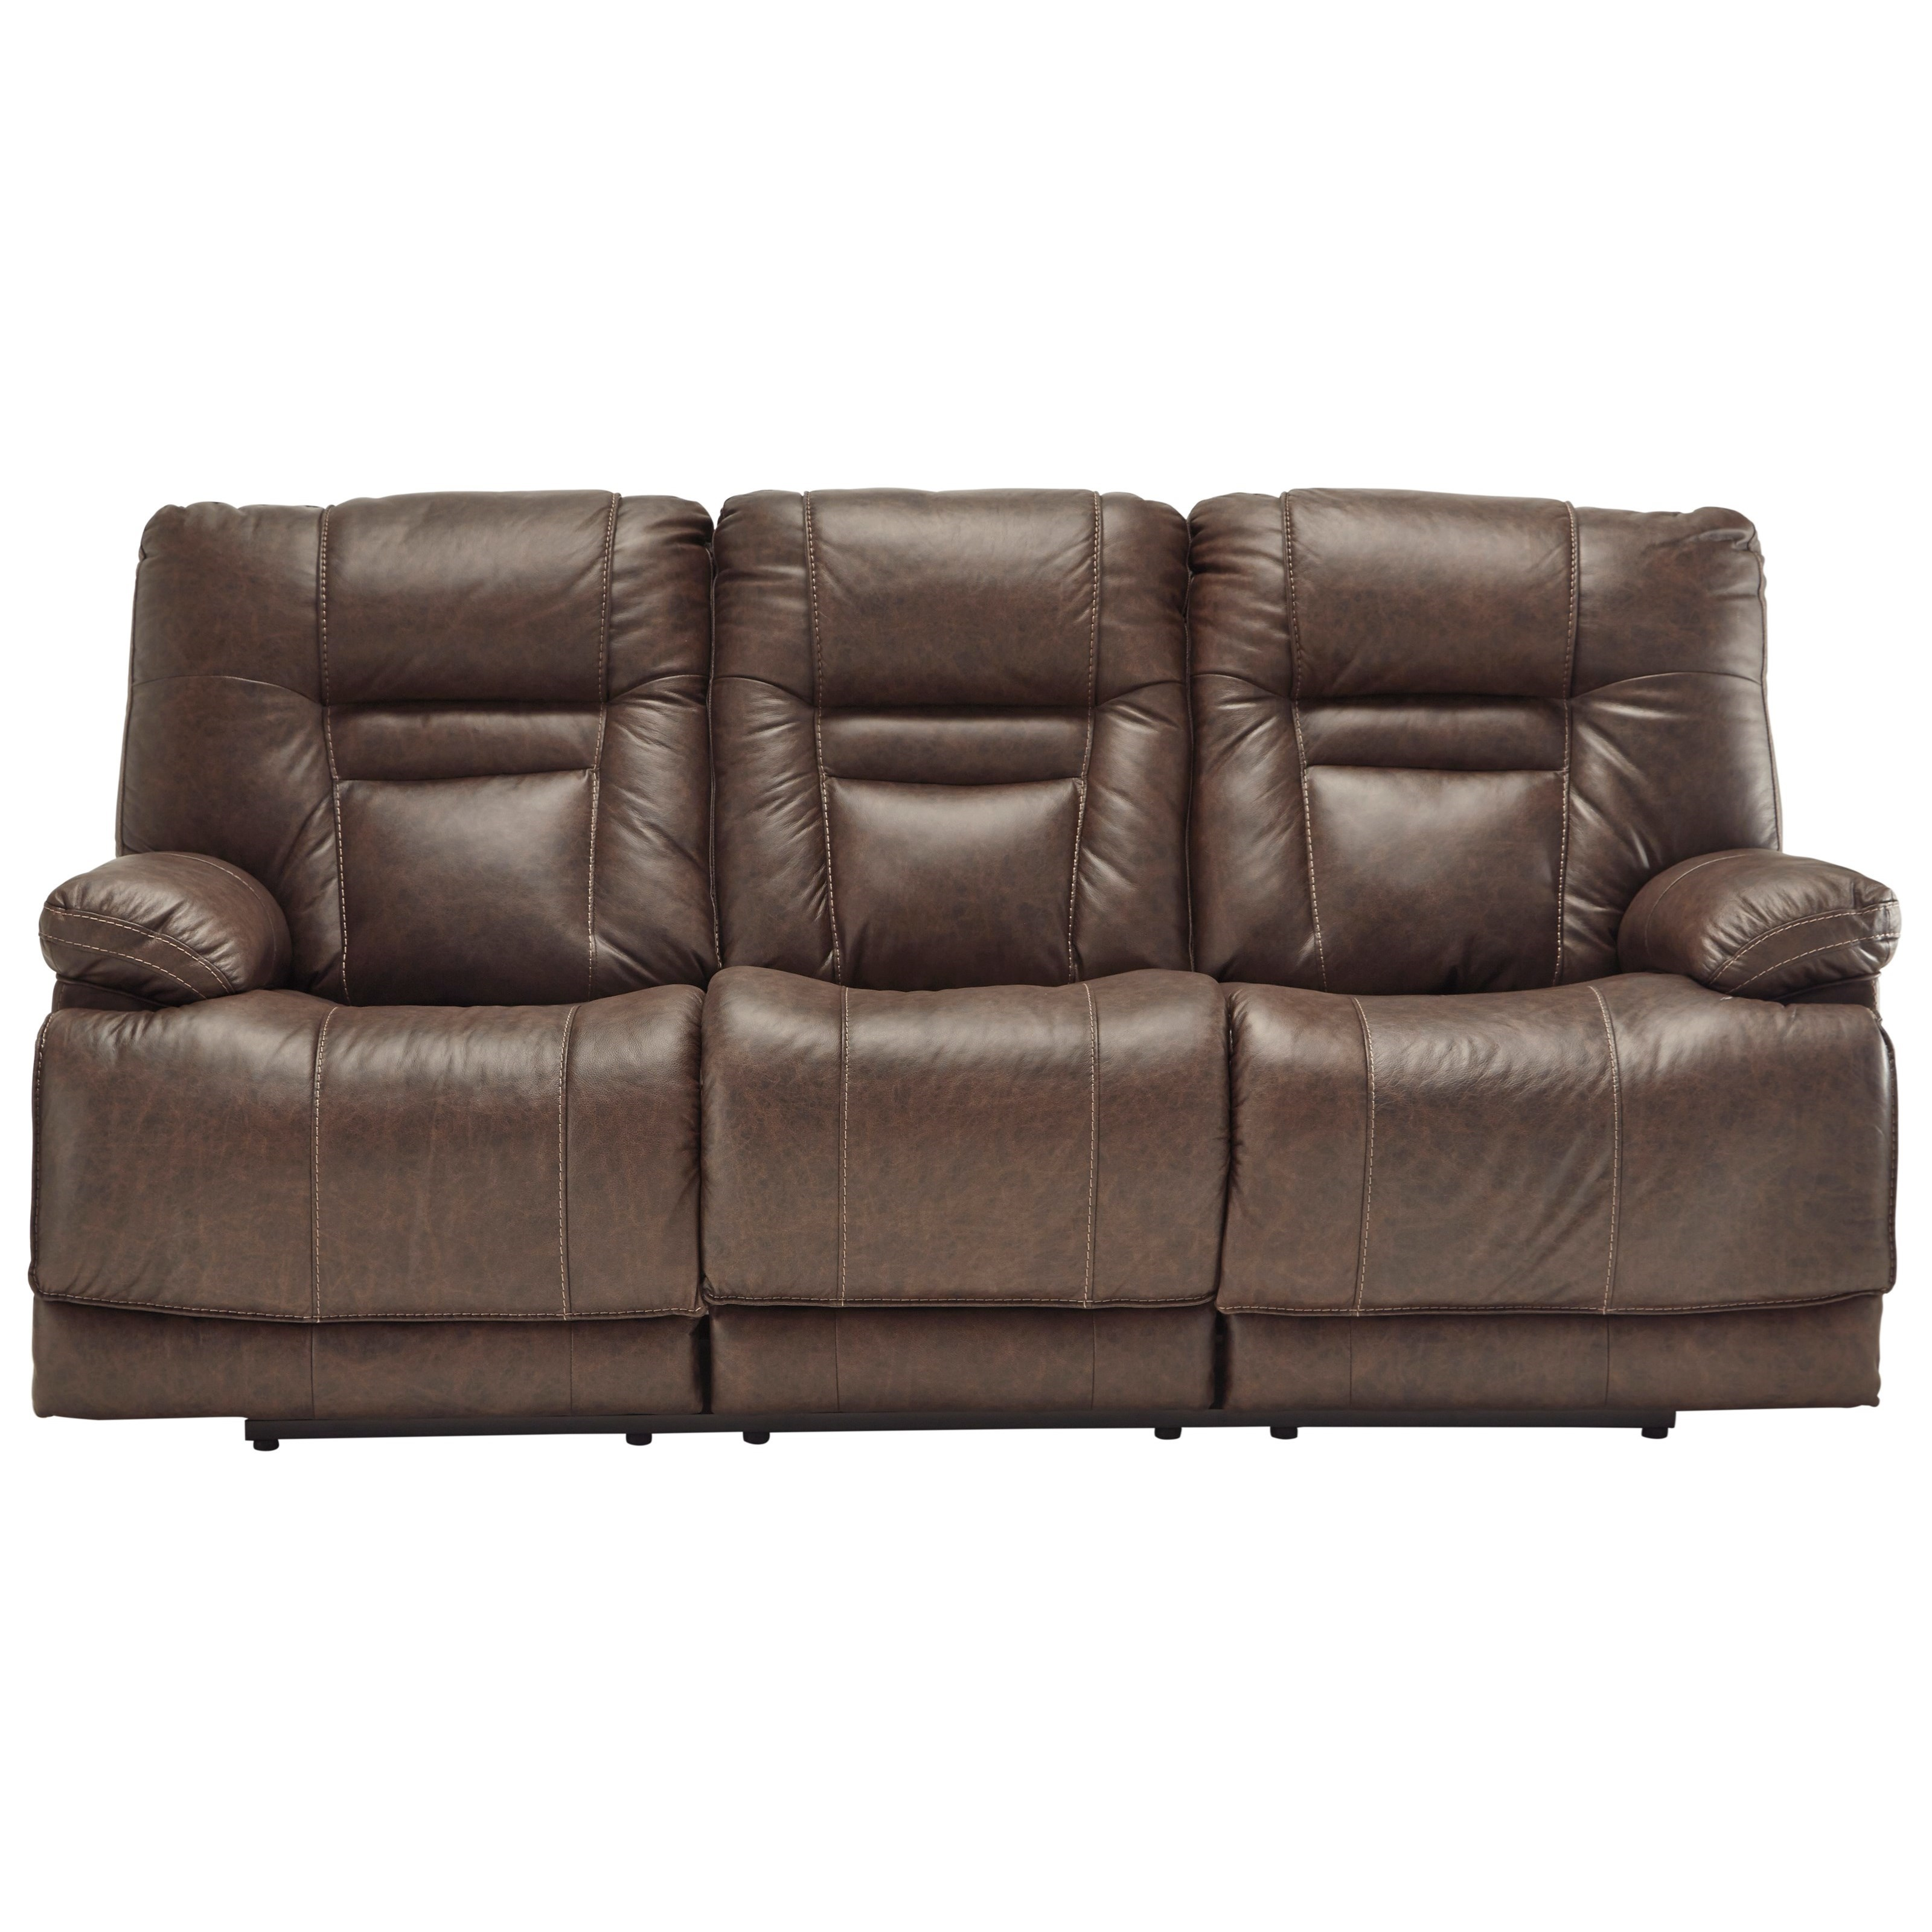 Signature Design by Ashley Wurstrow Power Reclining Sofa with